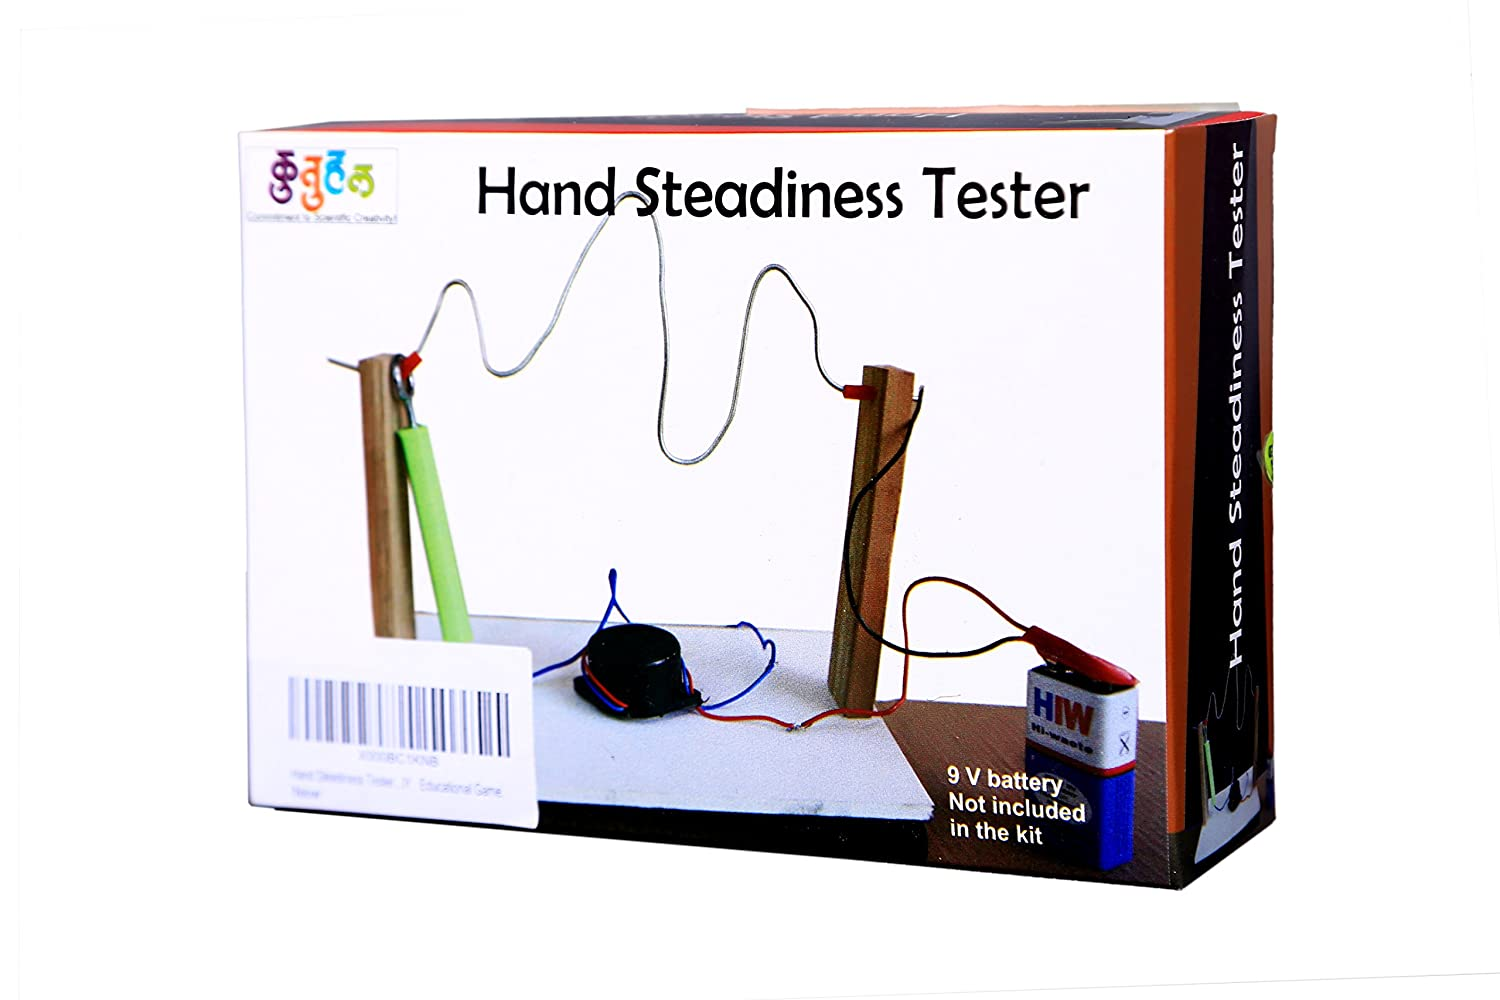 Hand Steadiness Tester Making Kit - Buy Now